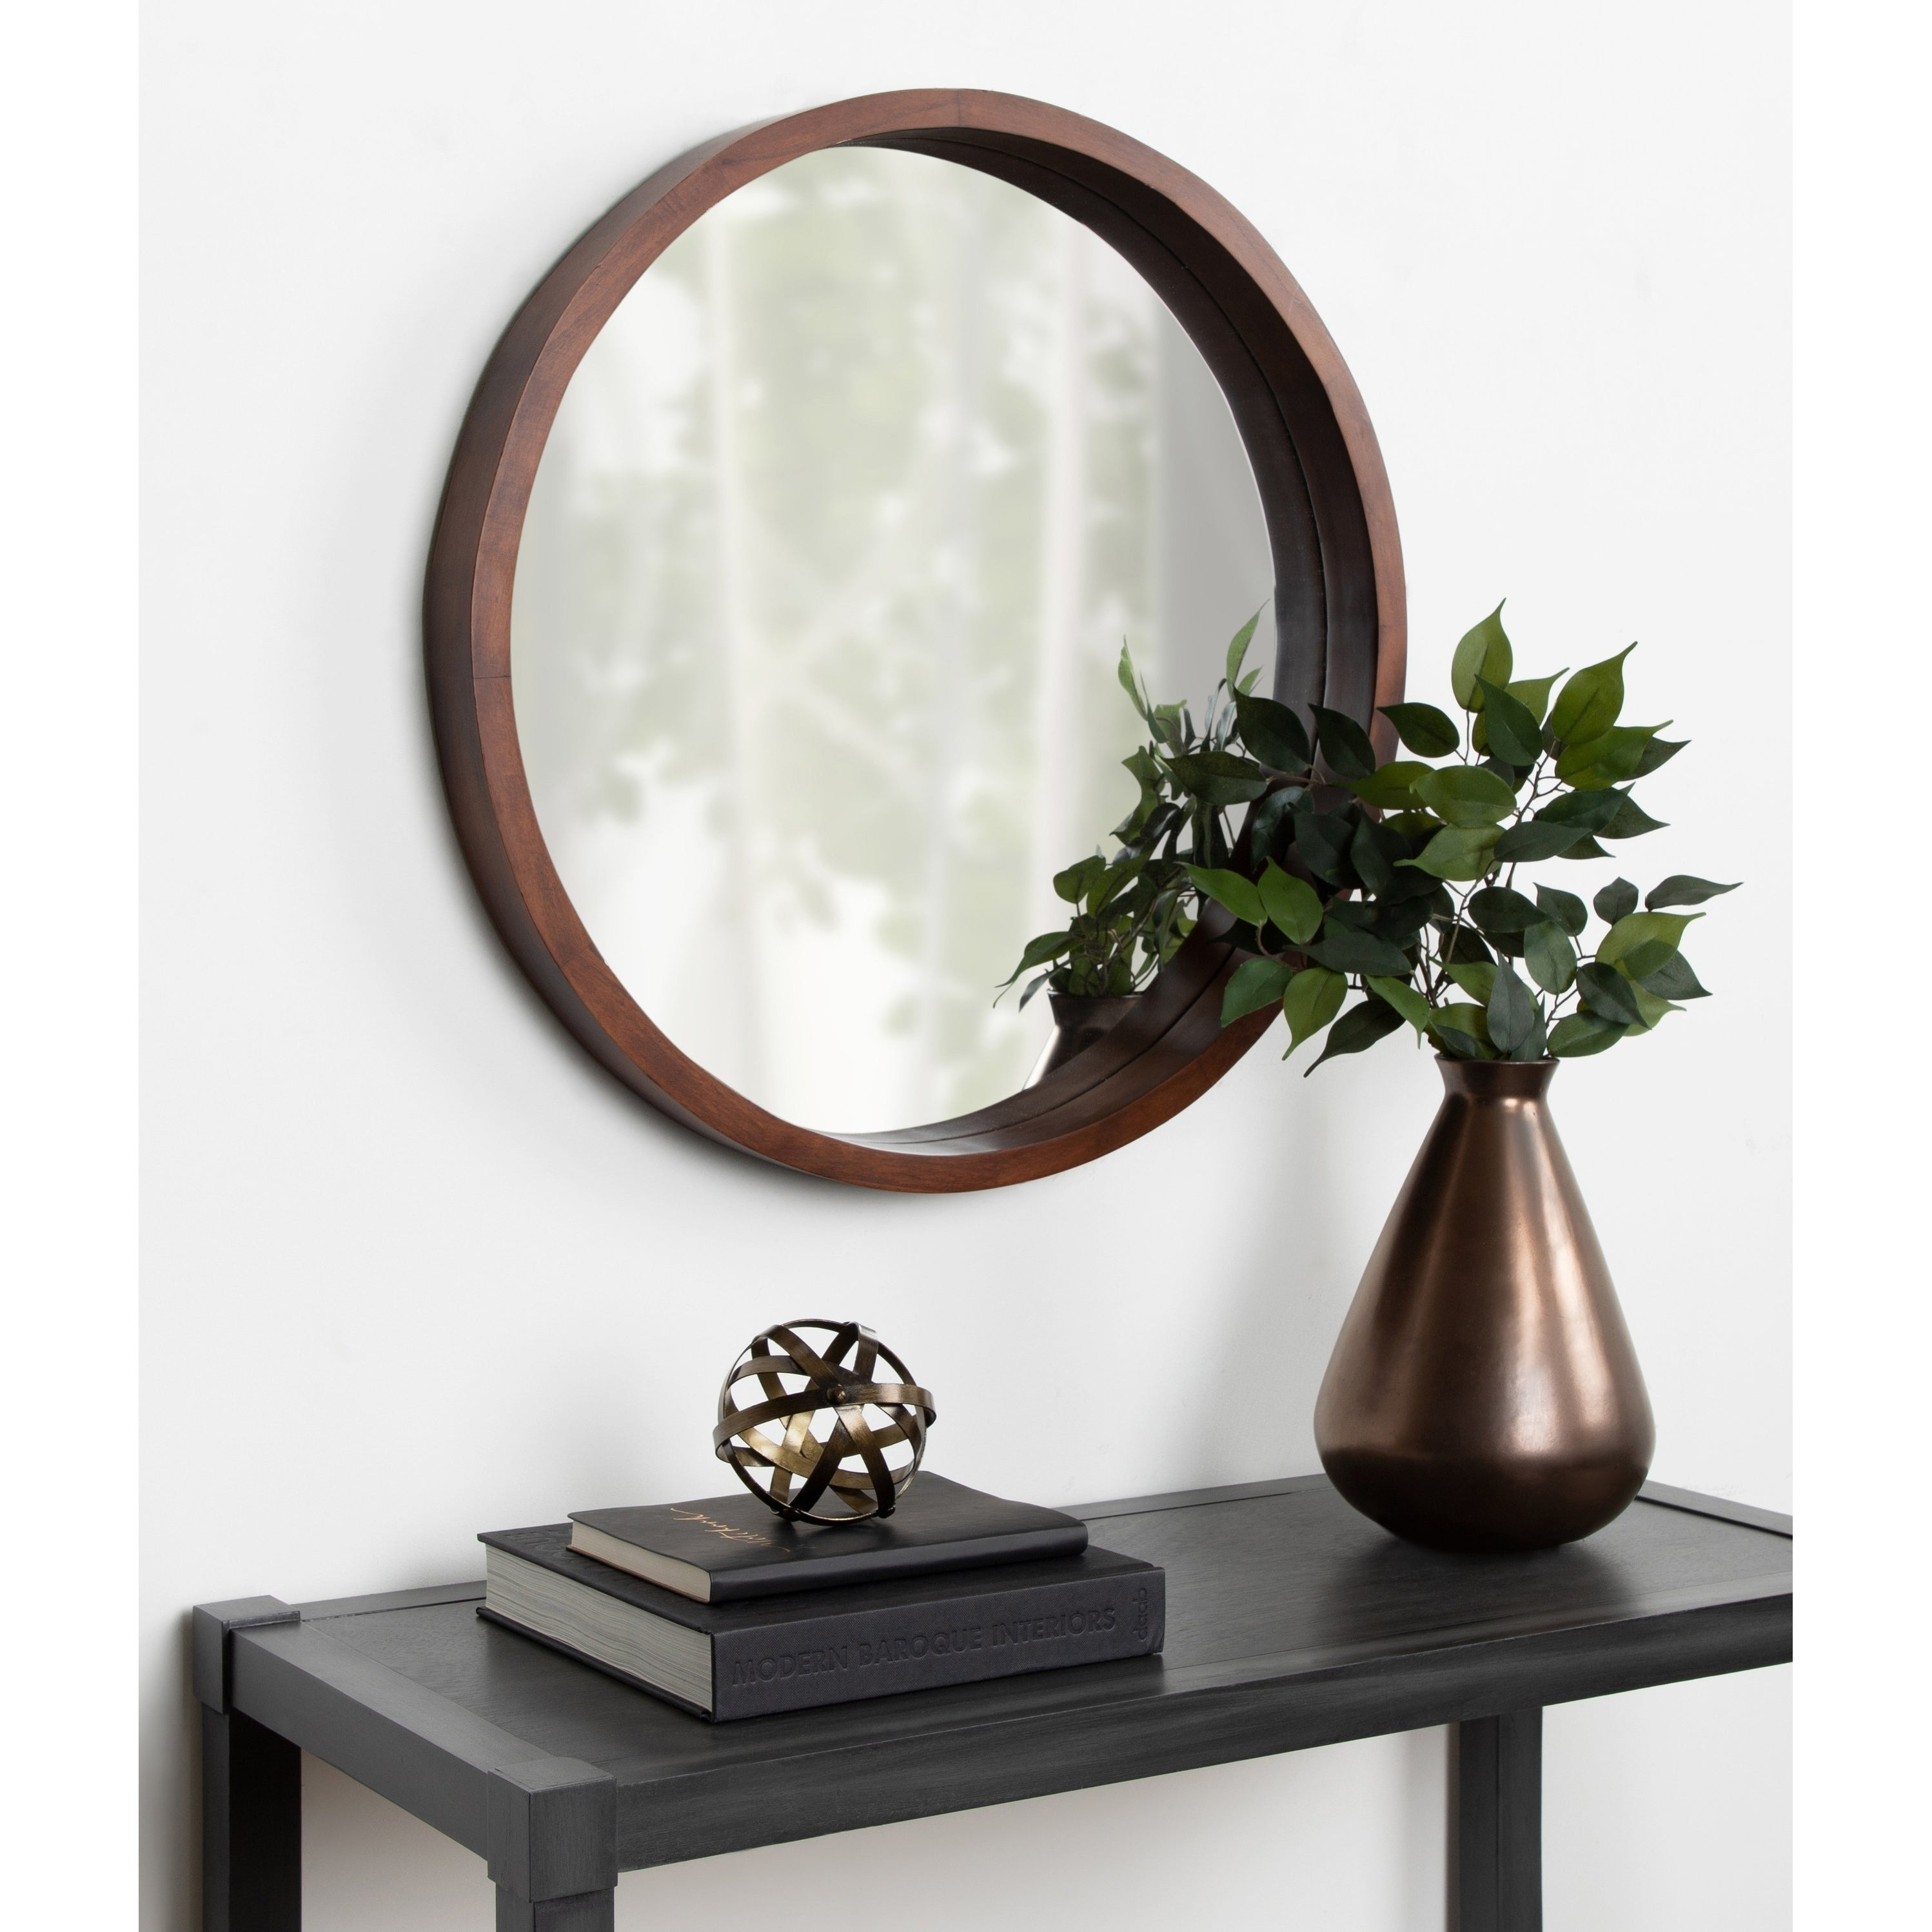 Accent Mirrors | Shop Online At Overstock Inside Oval Metallic Accent Mirrors (Image 2 of 20)